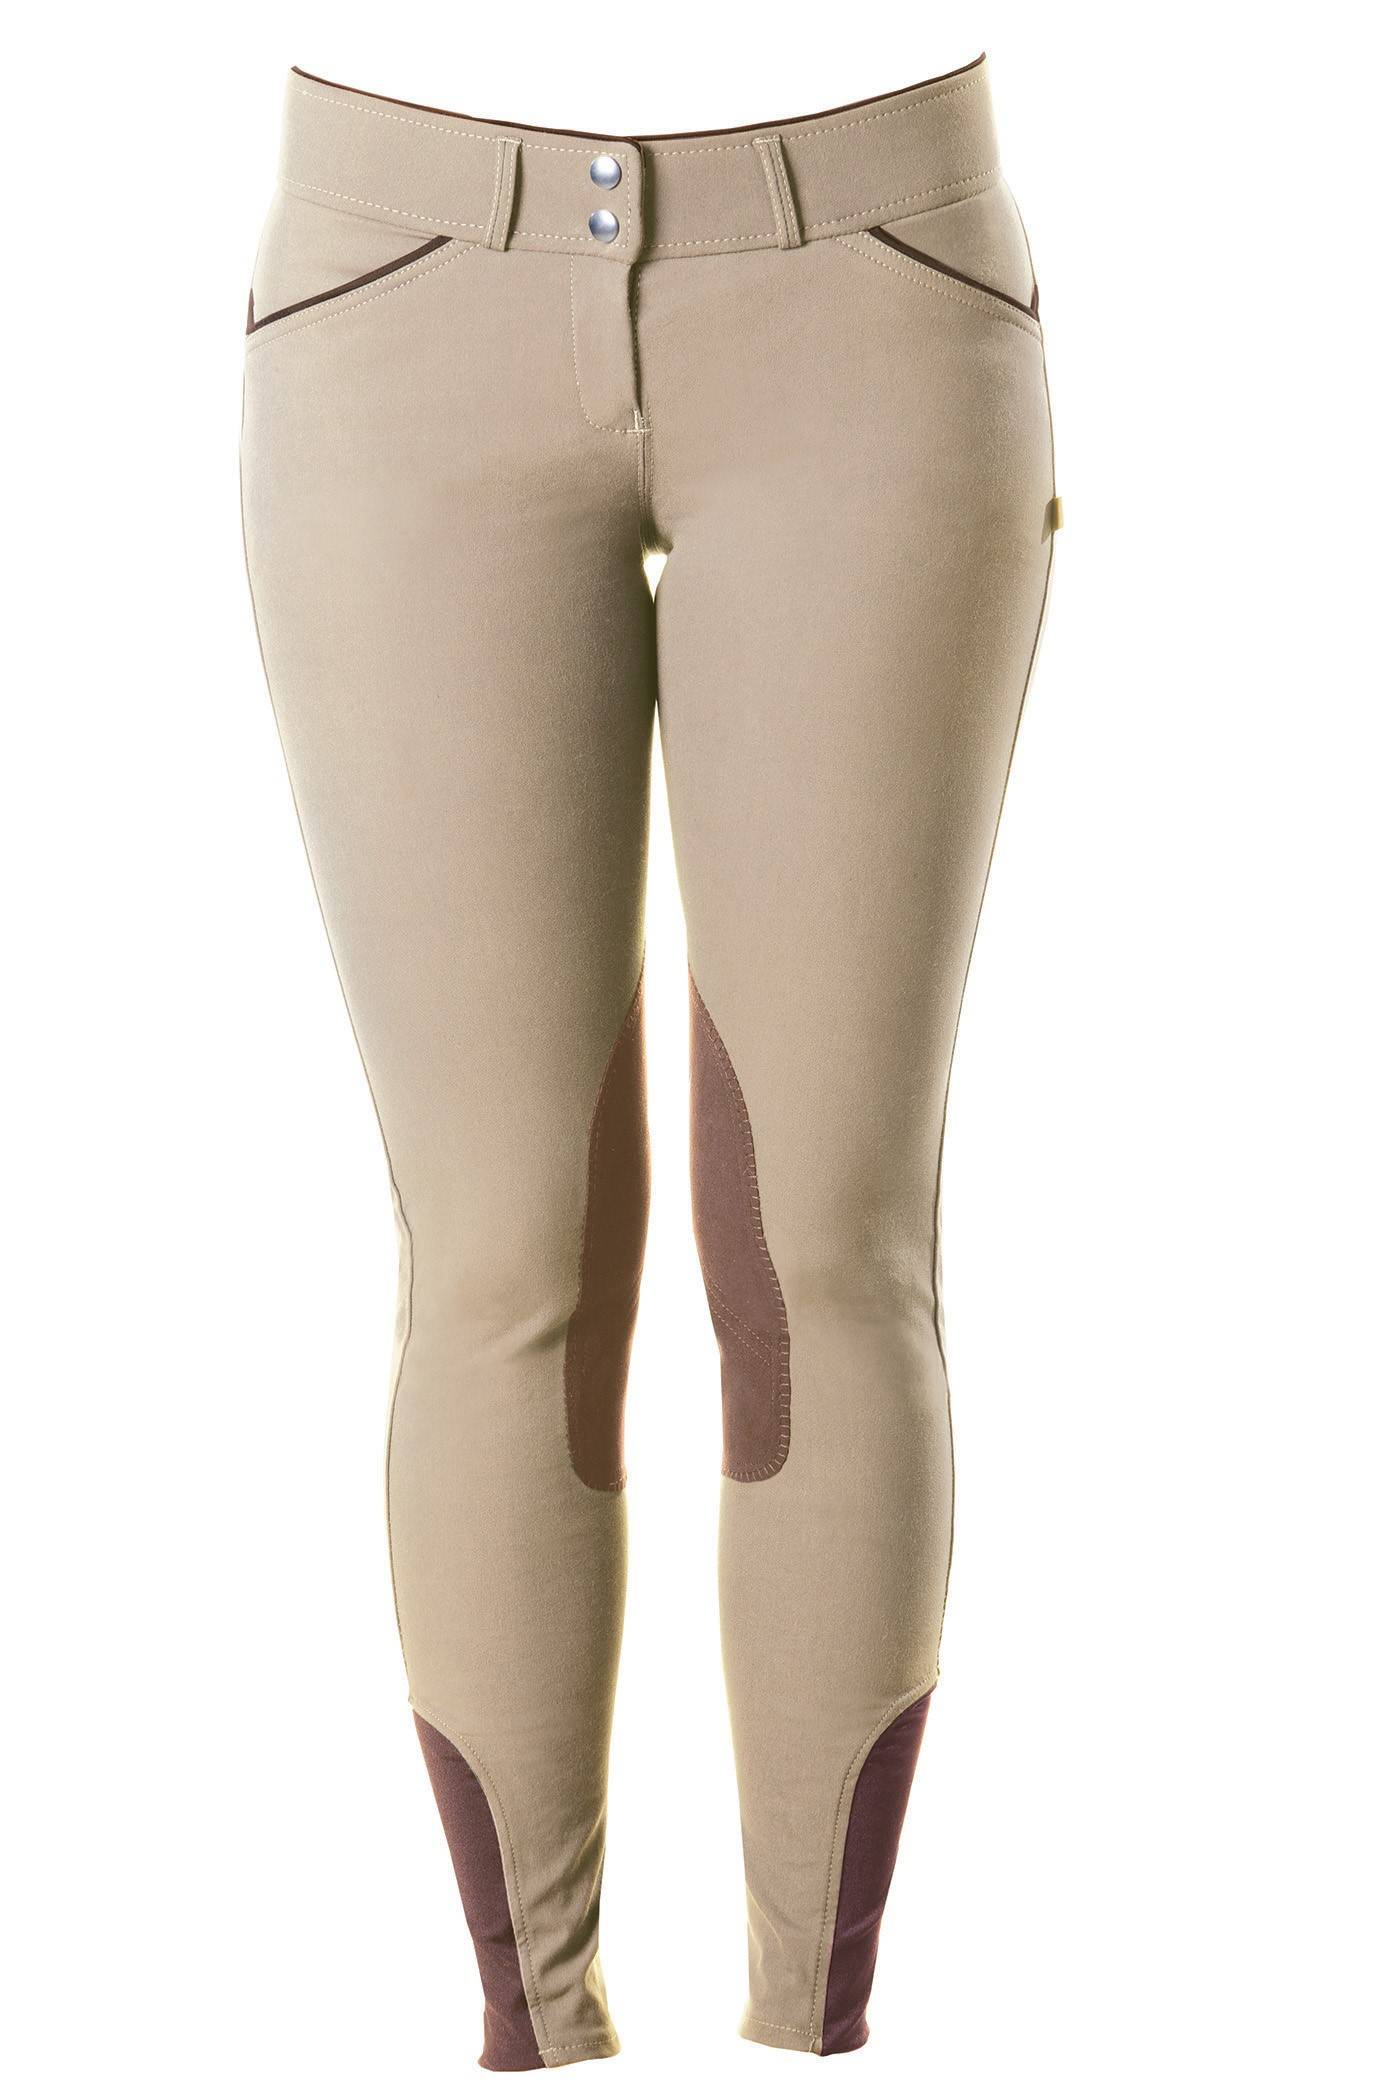 Devon-Aire Ladies Signature Woven Euroseat Breeches